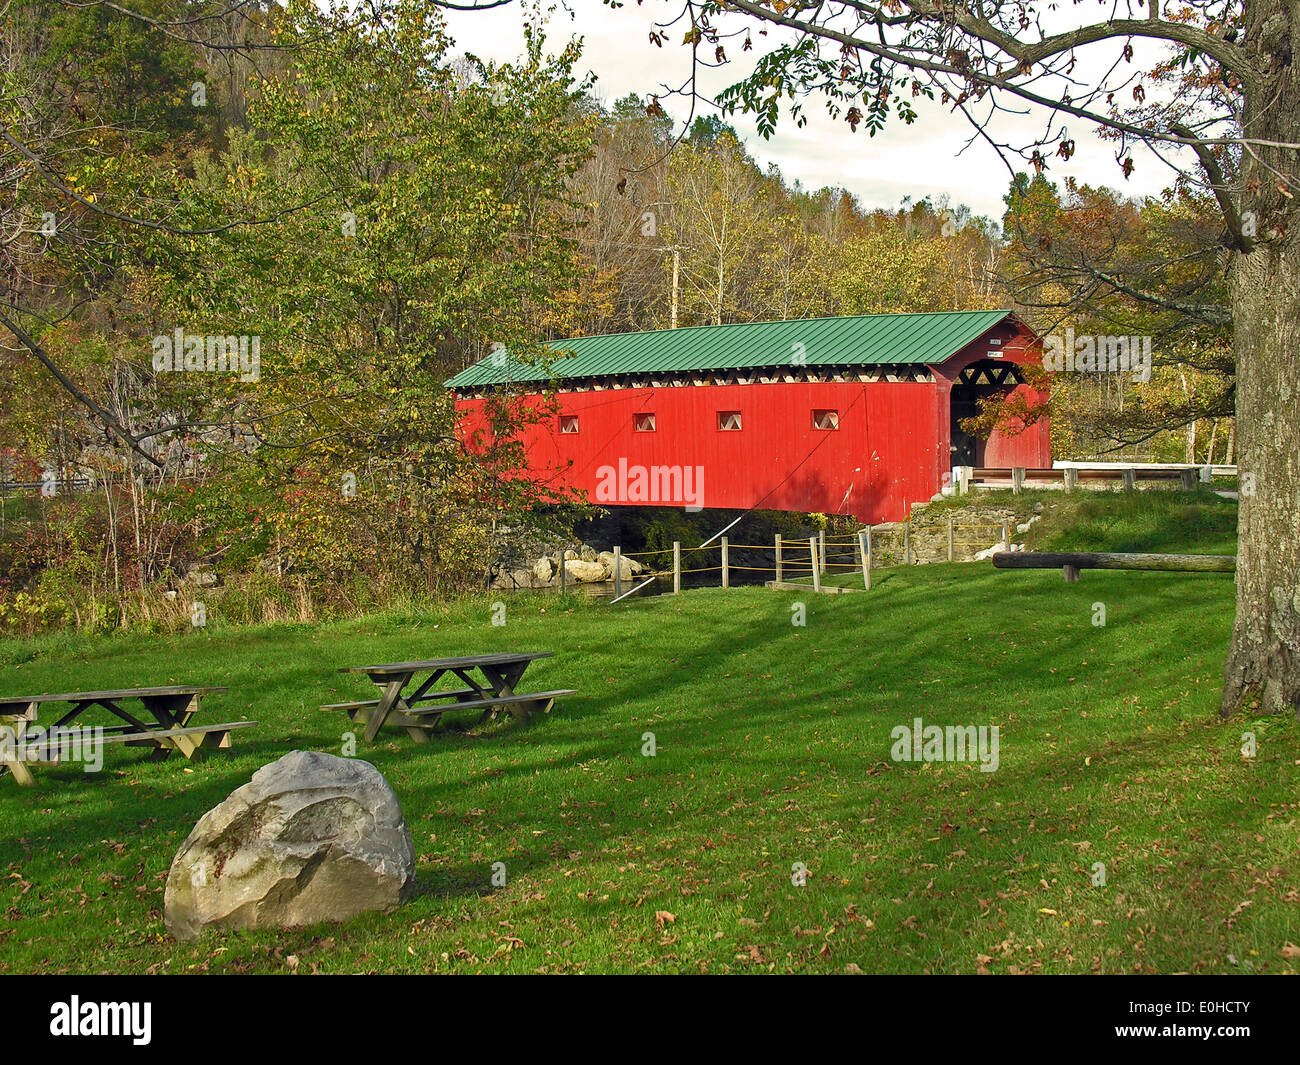 West Arlington Covered Bridge, Vermont, USA. Built in 1852 it has a 74 ft span over the Battenkill River. - Stock Image